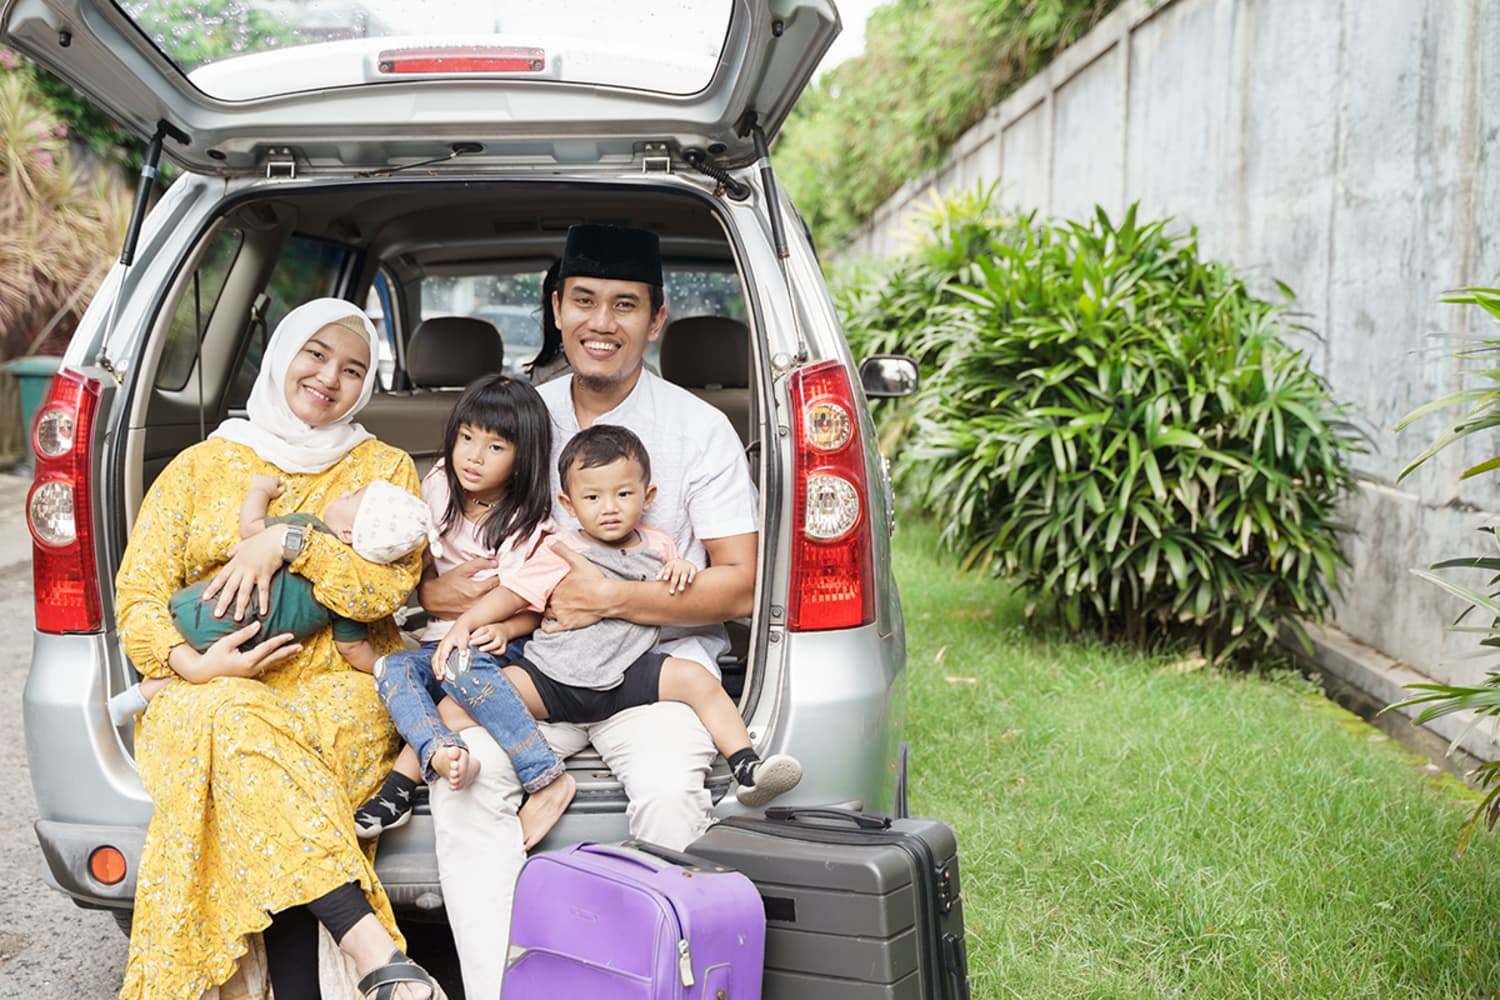 Is the Family Car a Disaster? Try These Tips Before Your Next Road Trip.